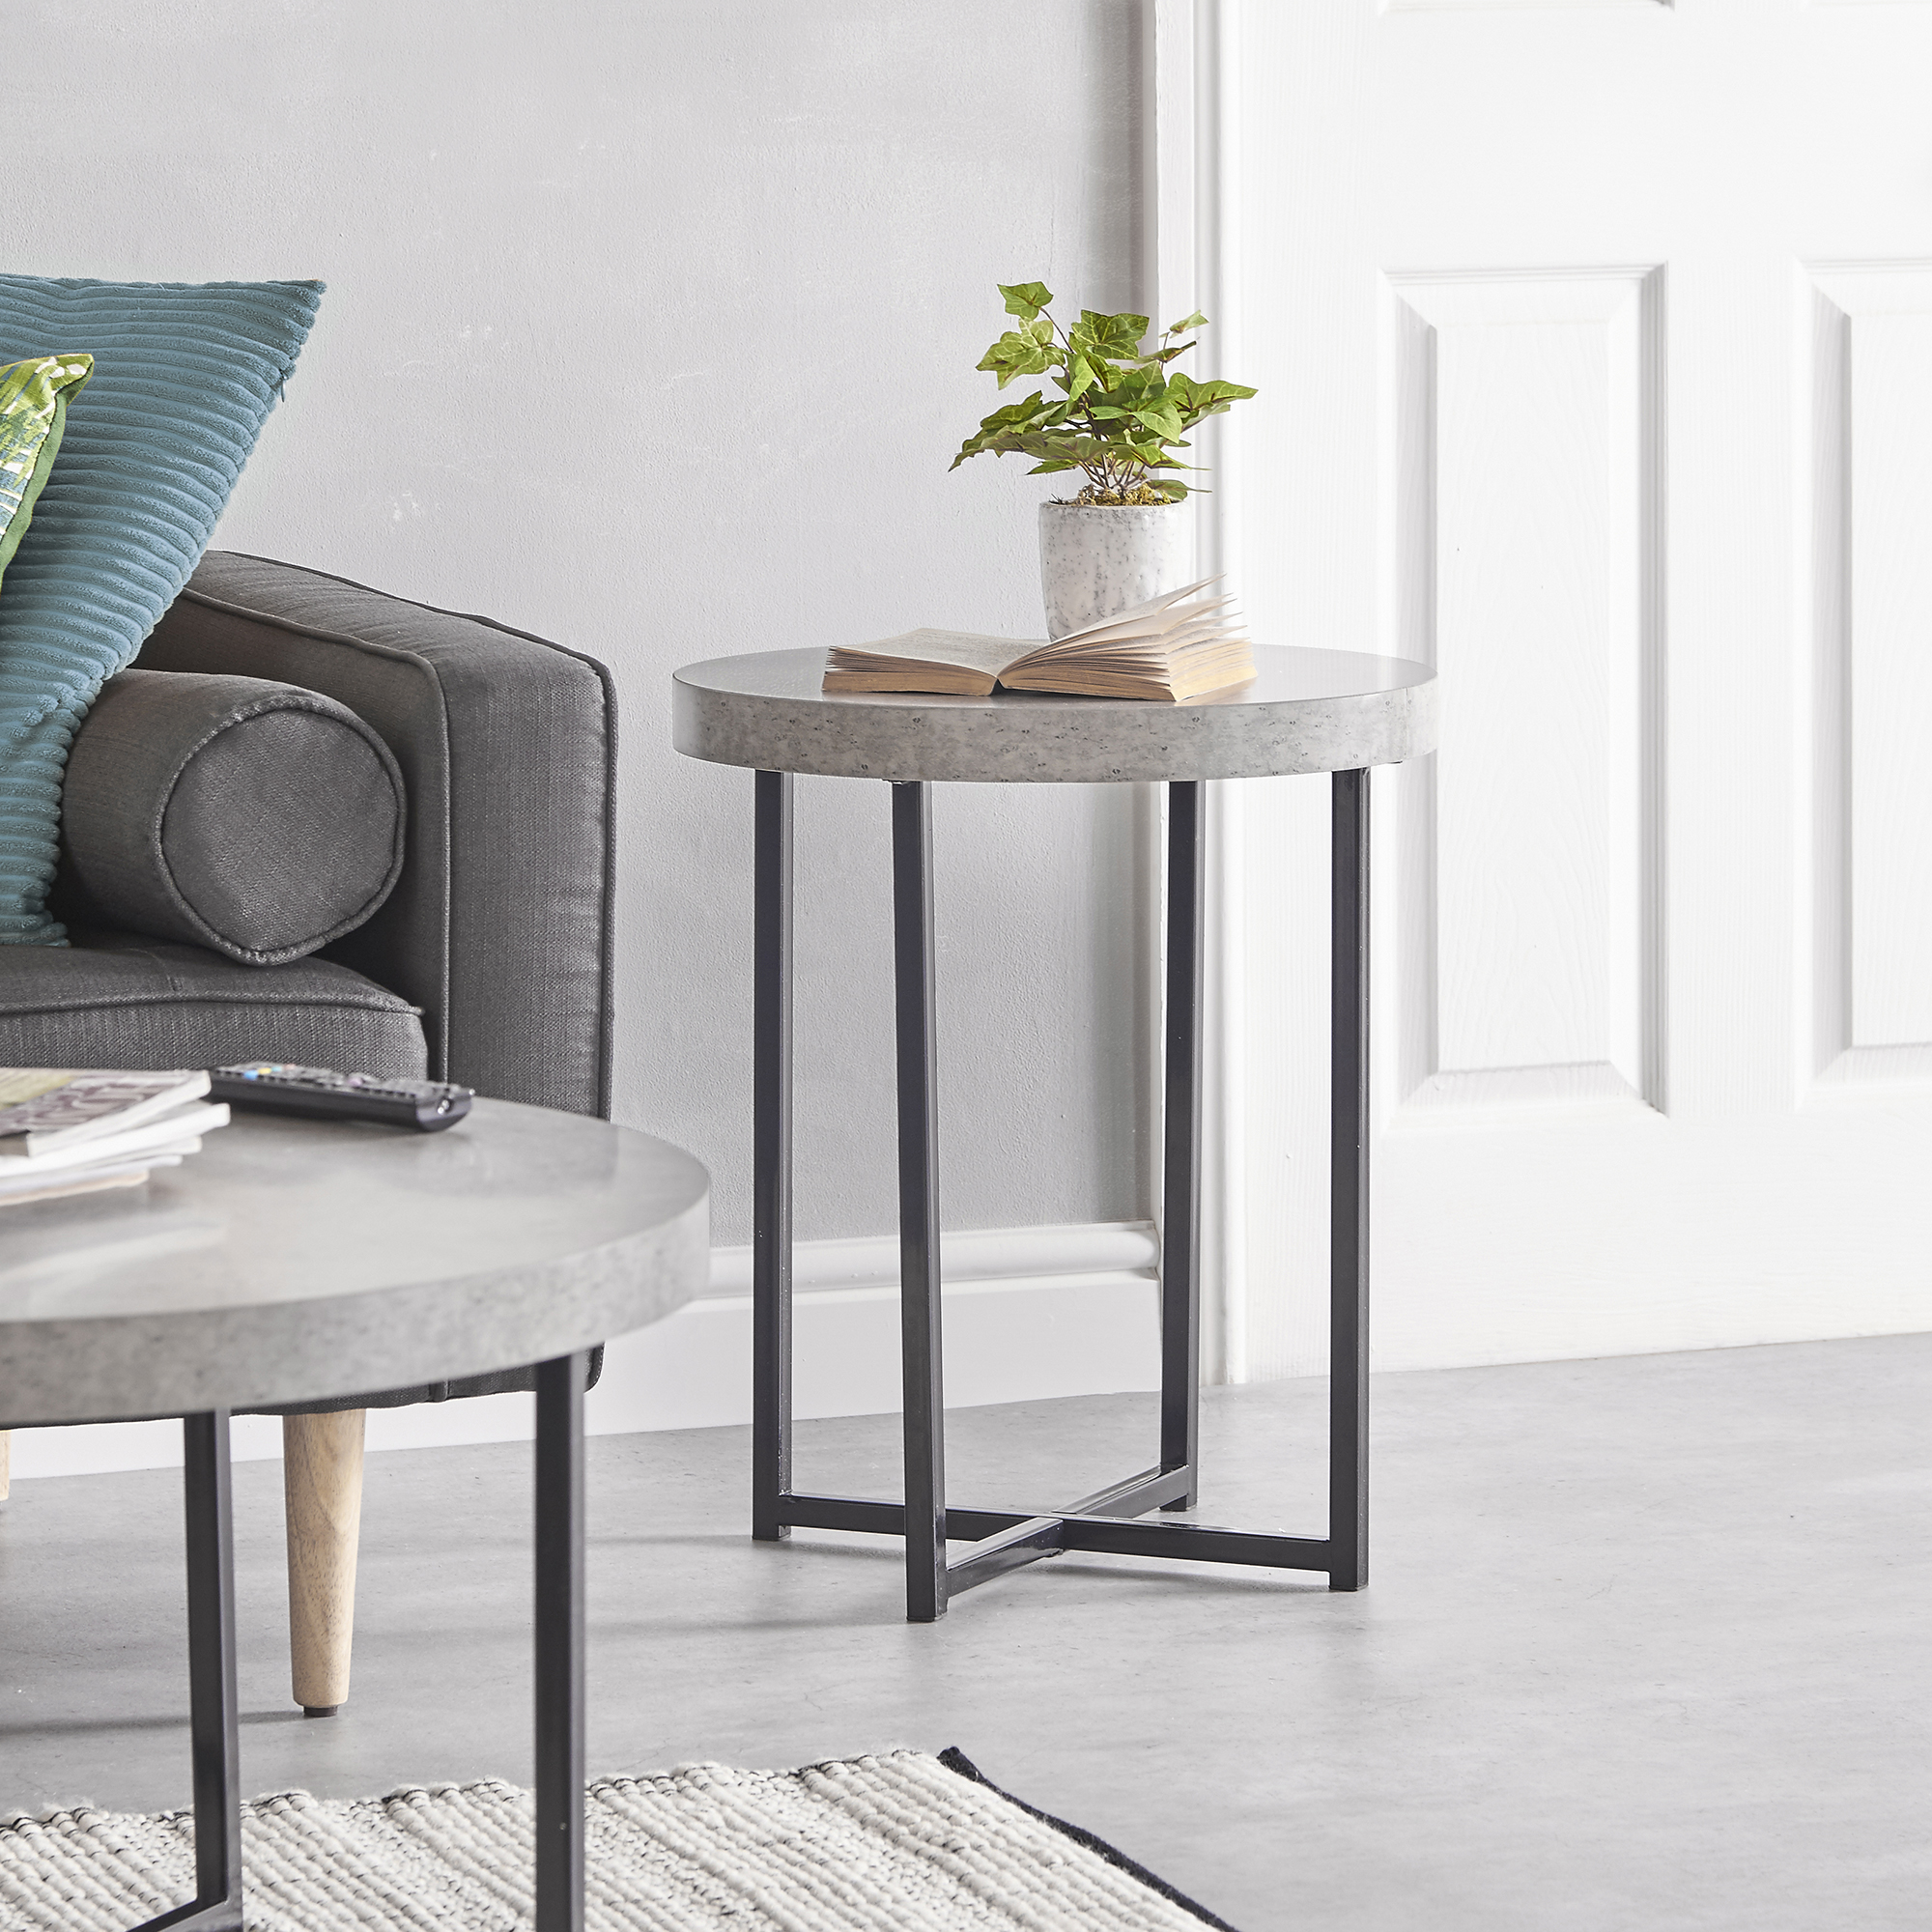 Details about vonhaus concrete look round side table modern lightweight contemporary furniture